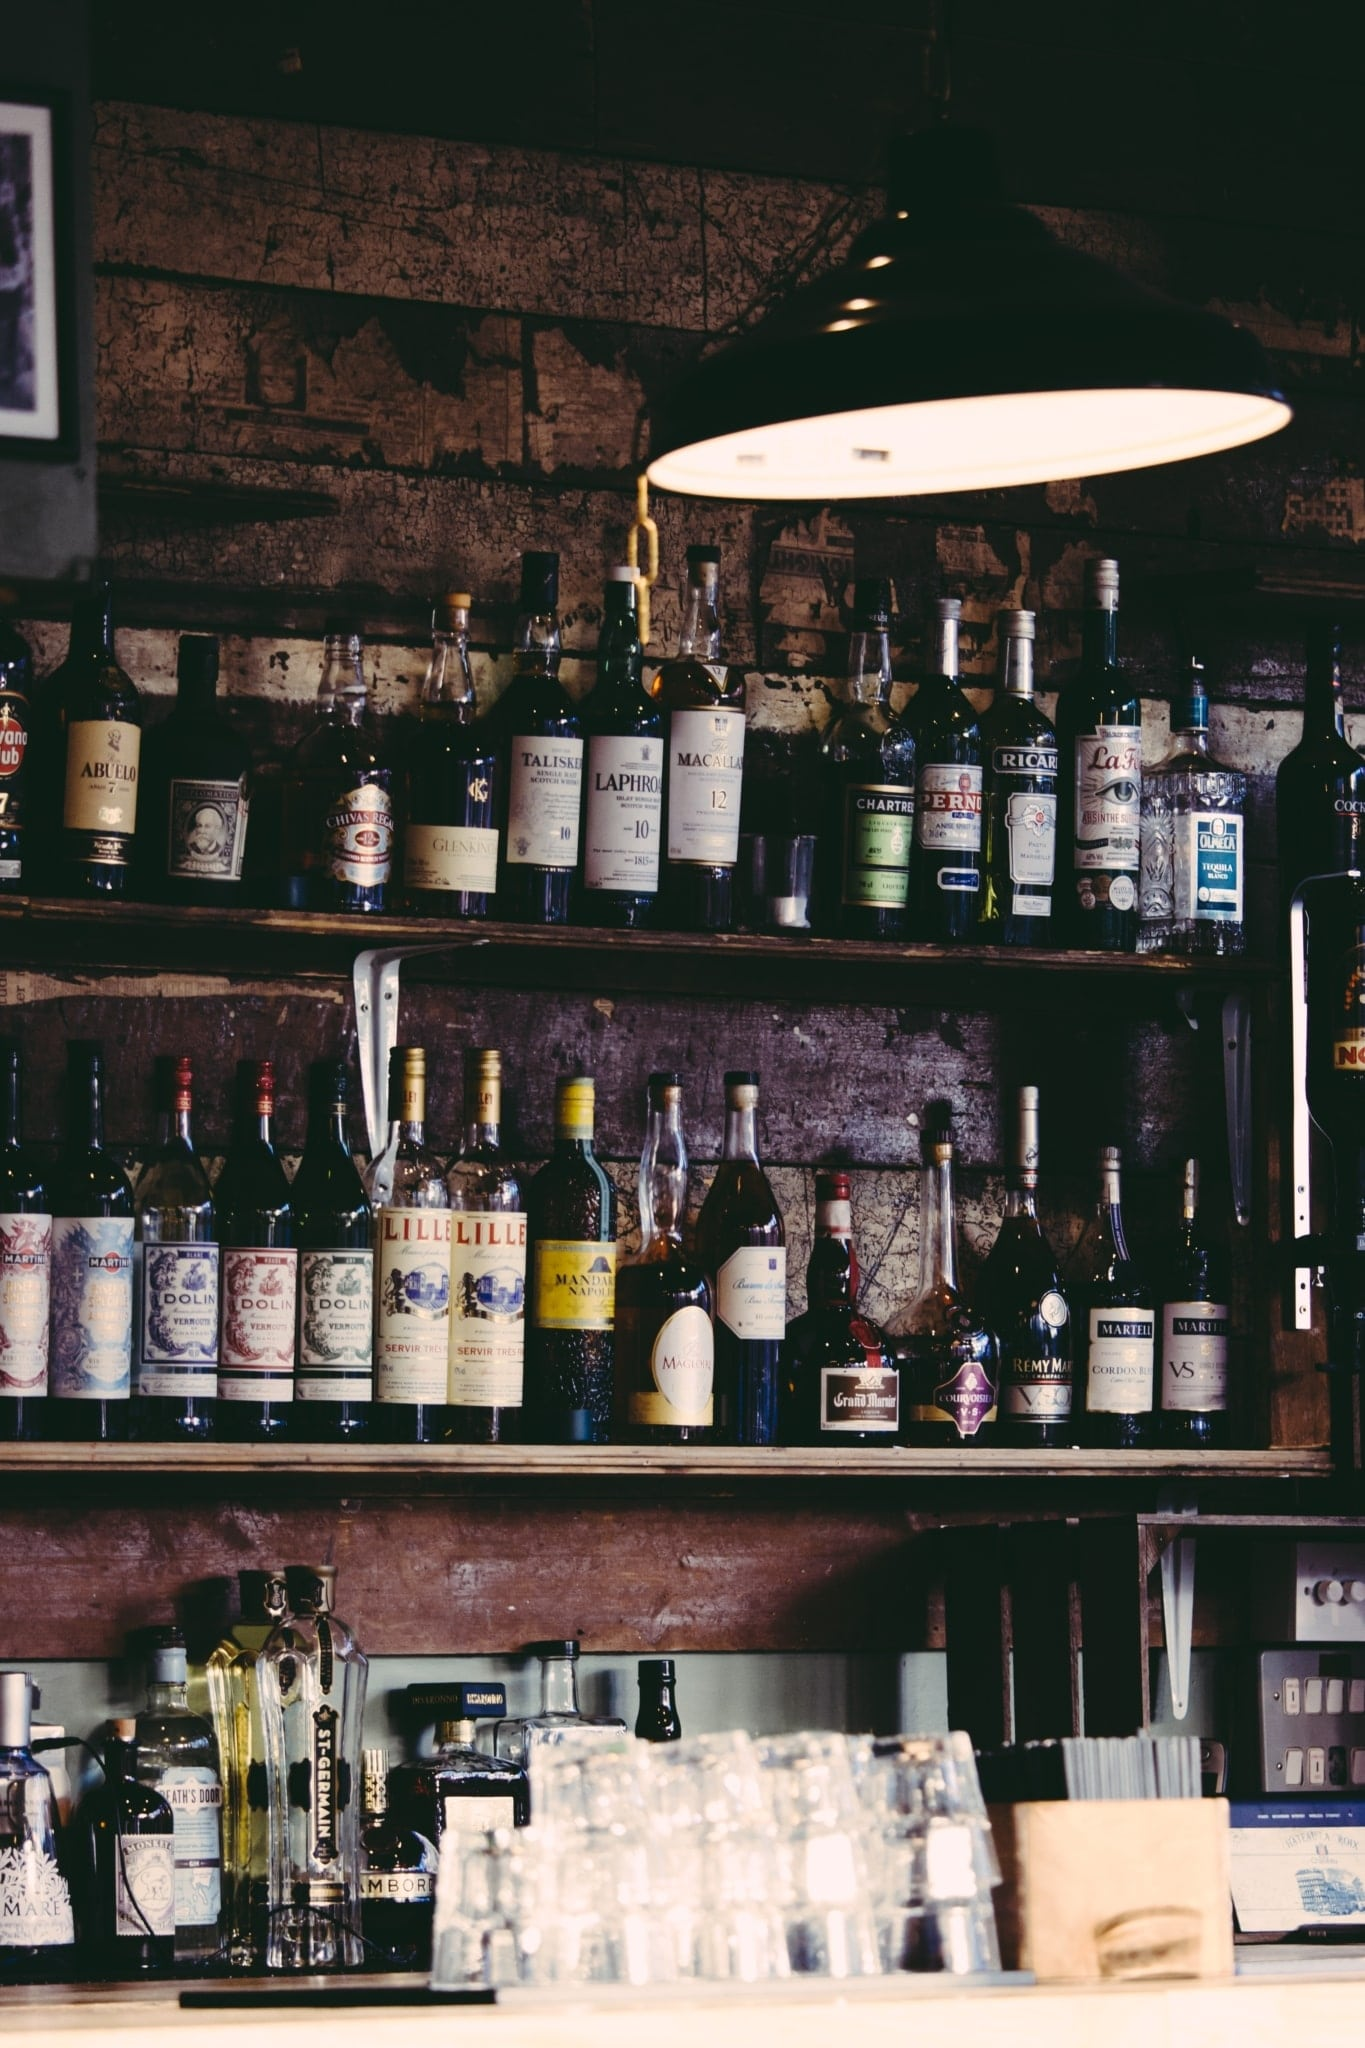 Photo of a bar with shelves with liquor